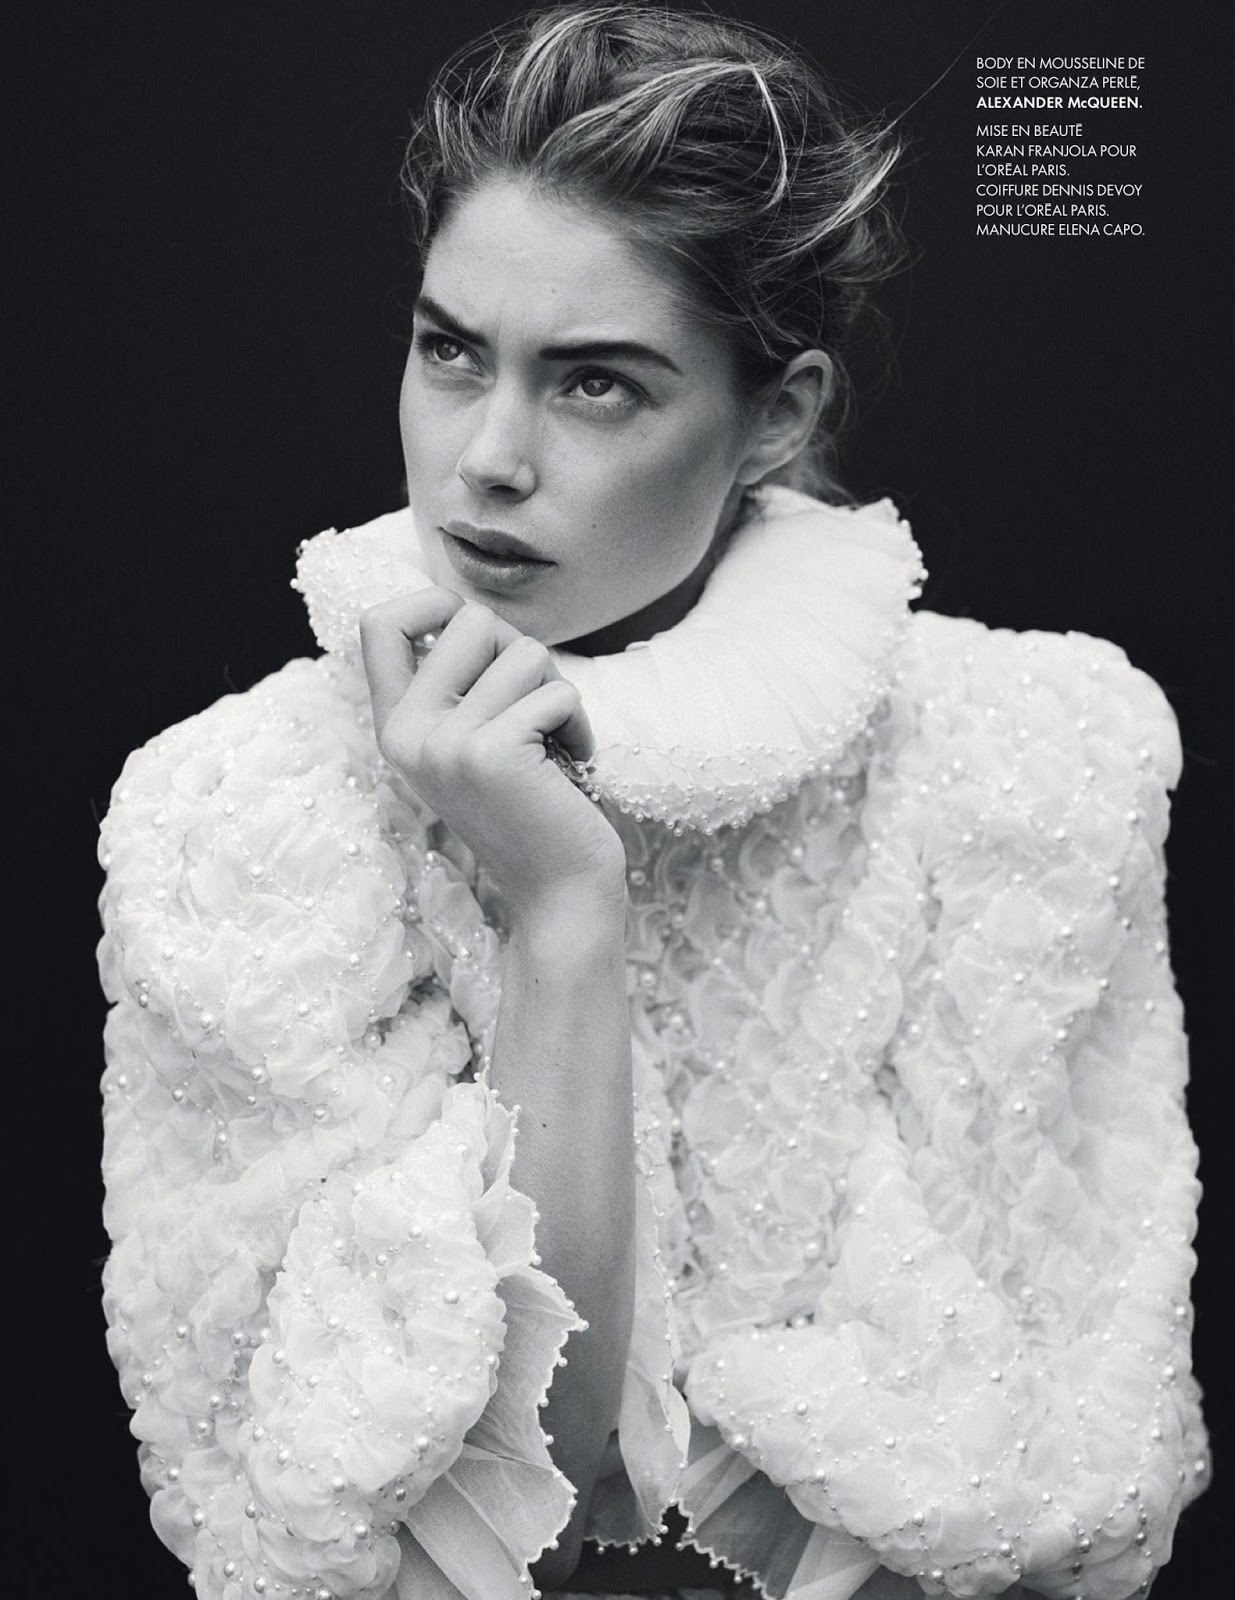 fashion_scans_remastered-doutzen_kroes-elle_france_2-issue_3531-scanned_by_vampirehorde-hq-24.jpg